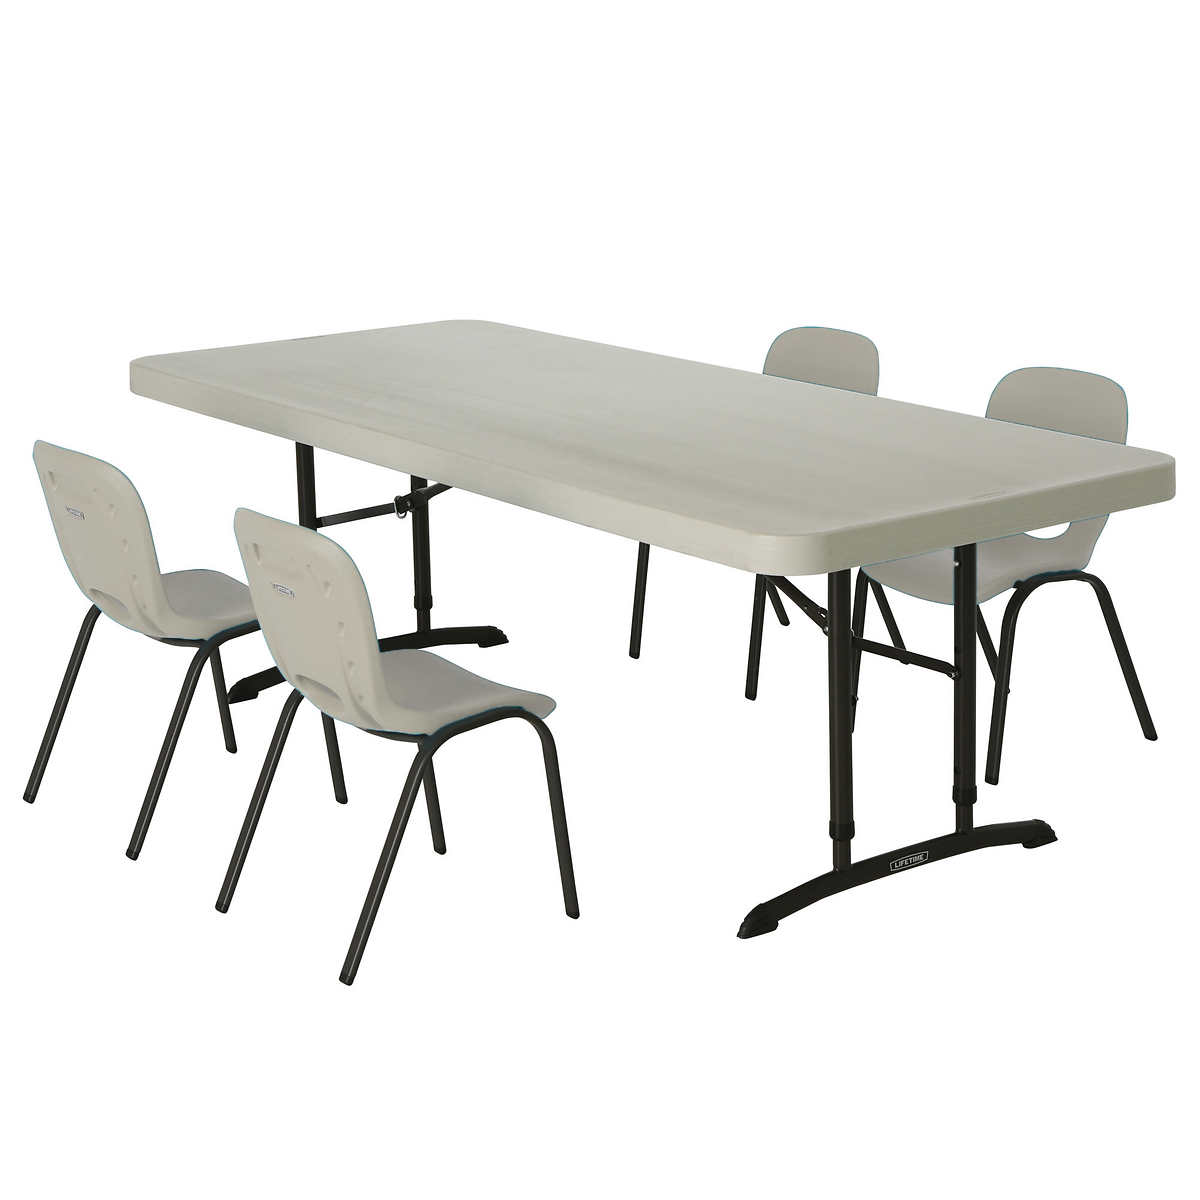 Classroom Table And Chairs classroom furniture | costco